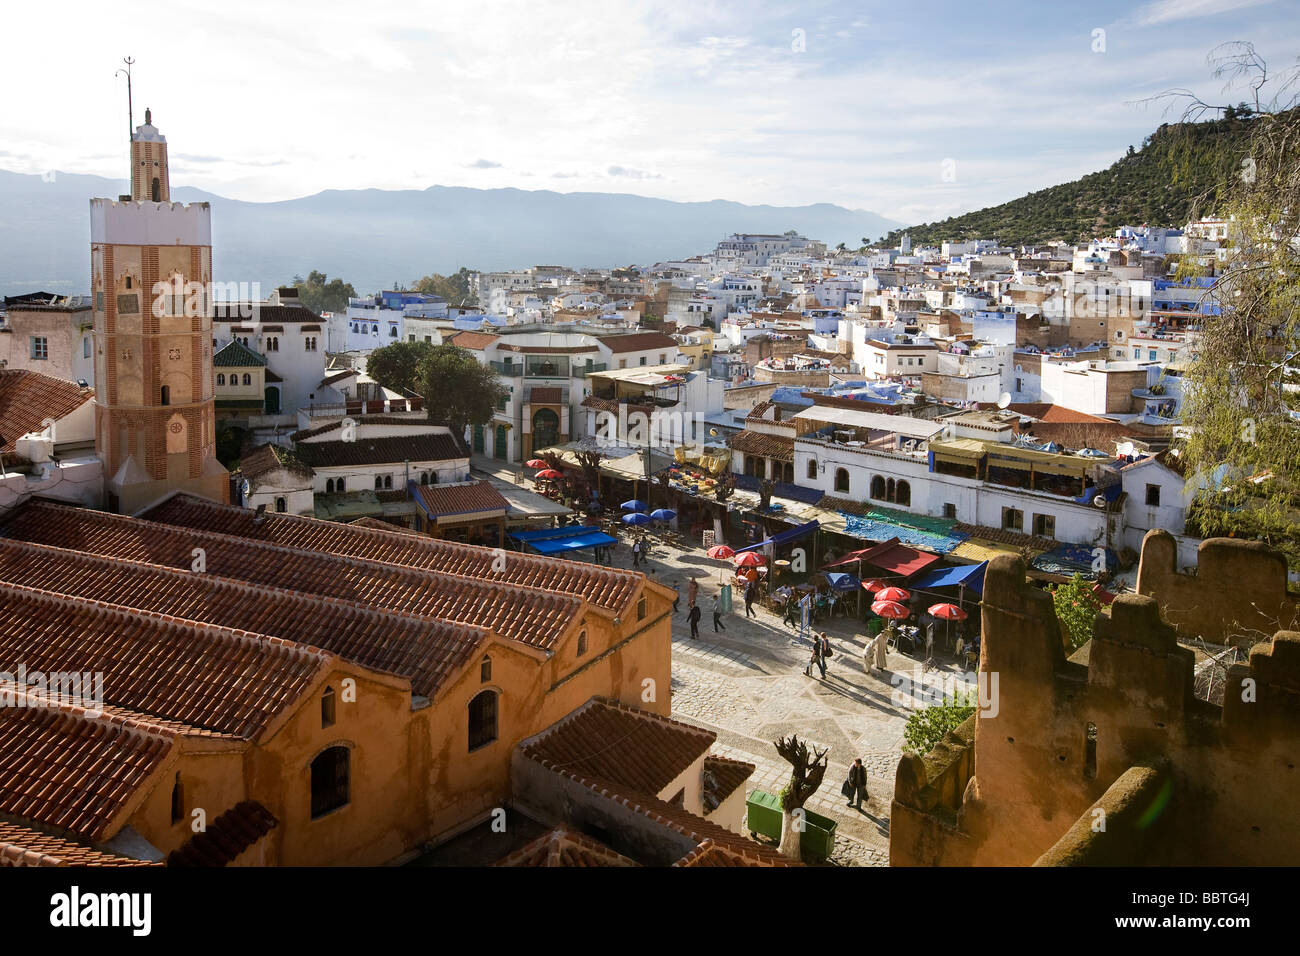 View over Grand Mosque from Kasbah, Chefchaouen, Morocco - Stock Image